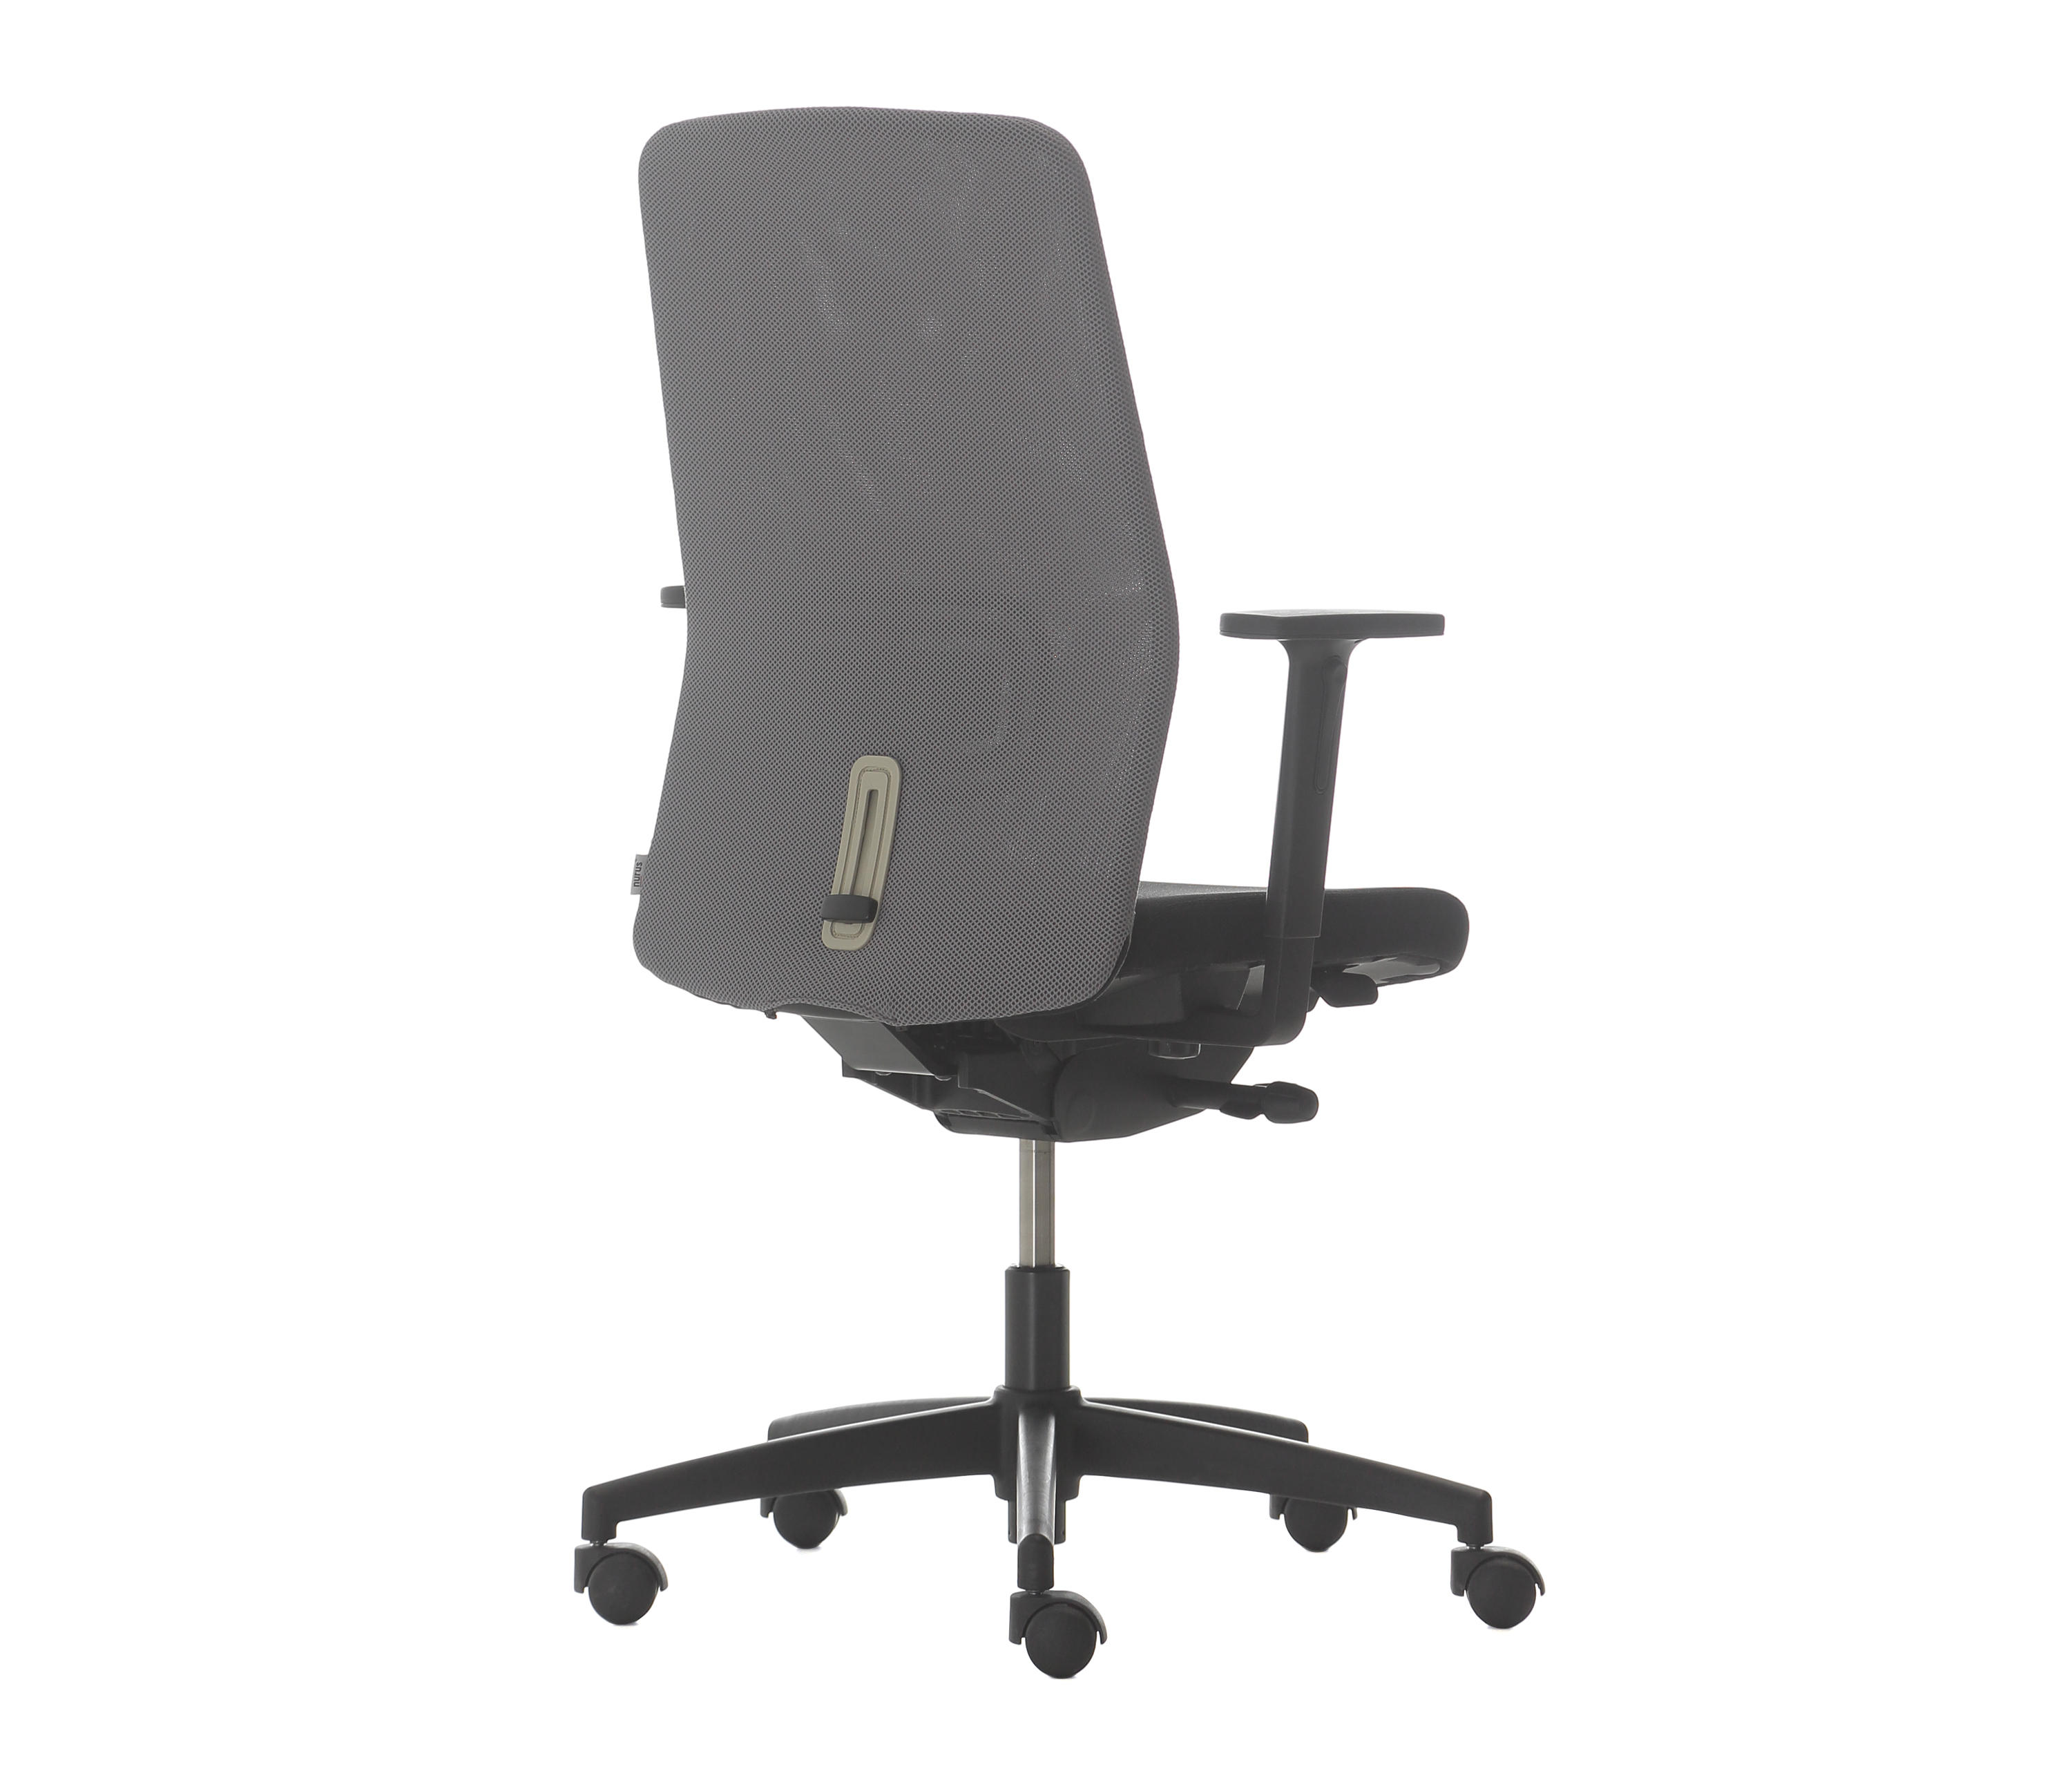 ... D Chair Pro Support® With Lumbar By Nurus | Office Chairs ...